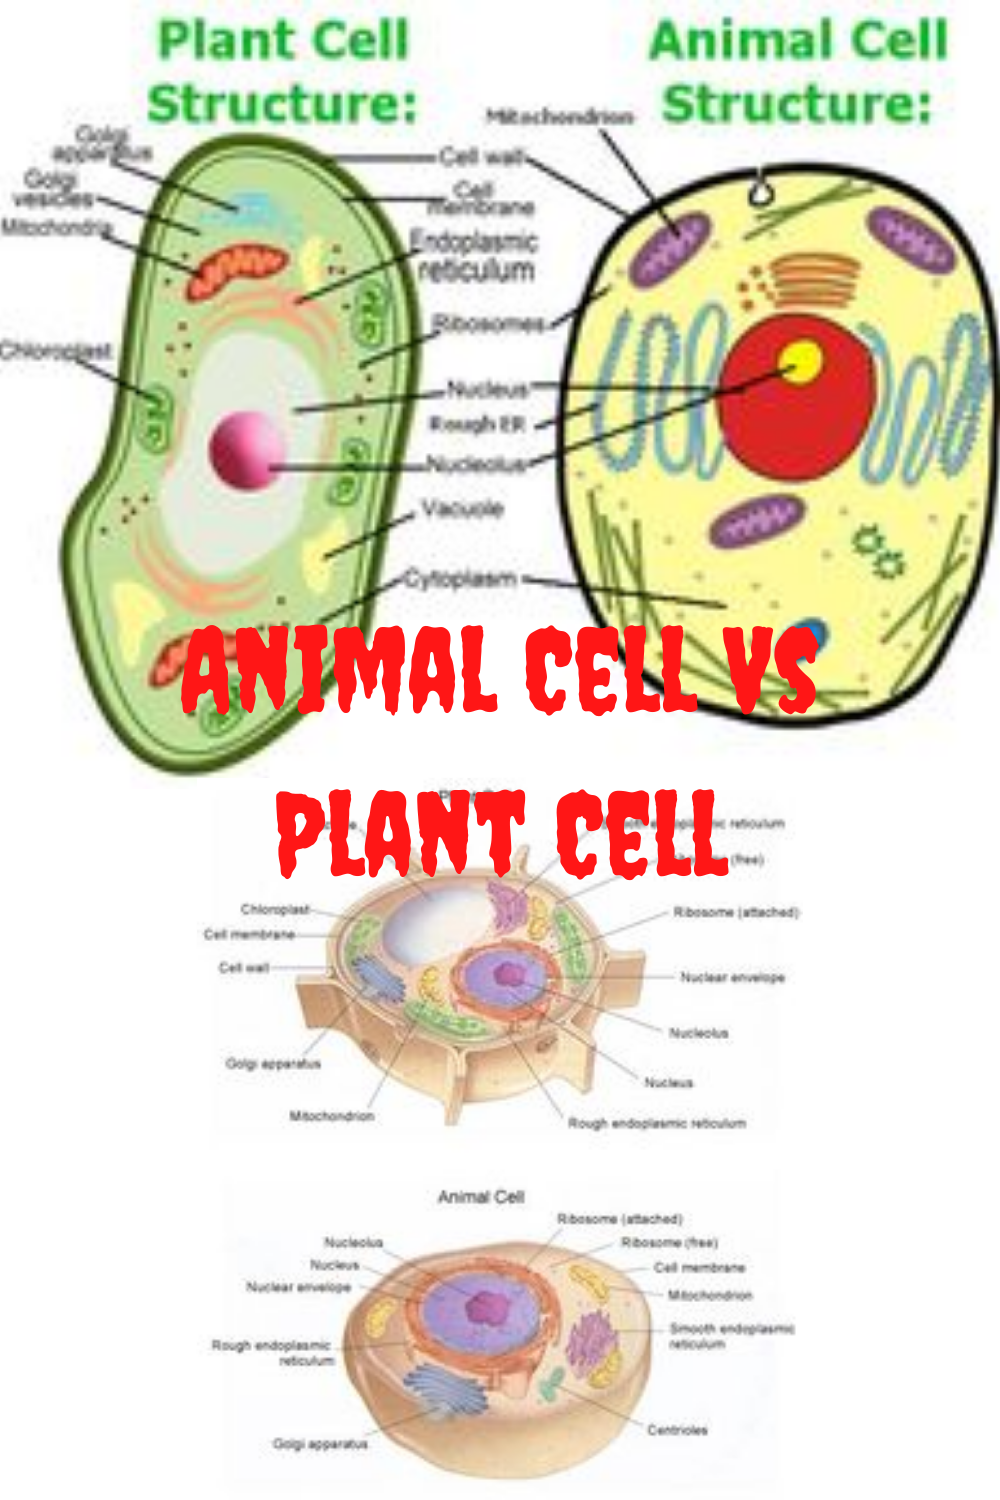 Plant Cell VS Animal Cell Diagram Pictures   Animal cell ...